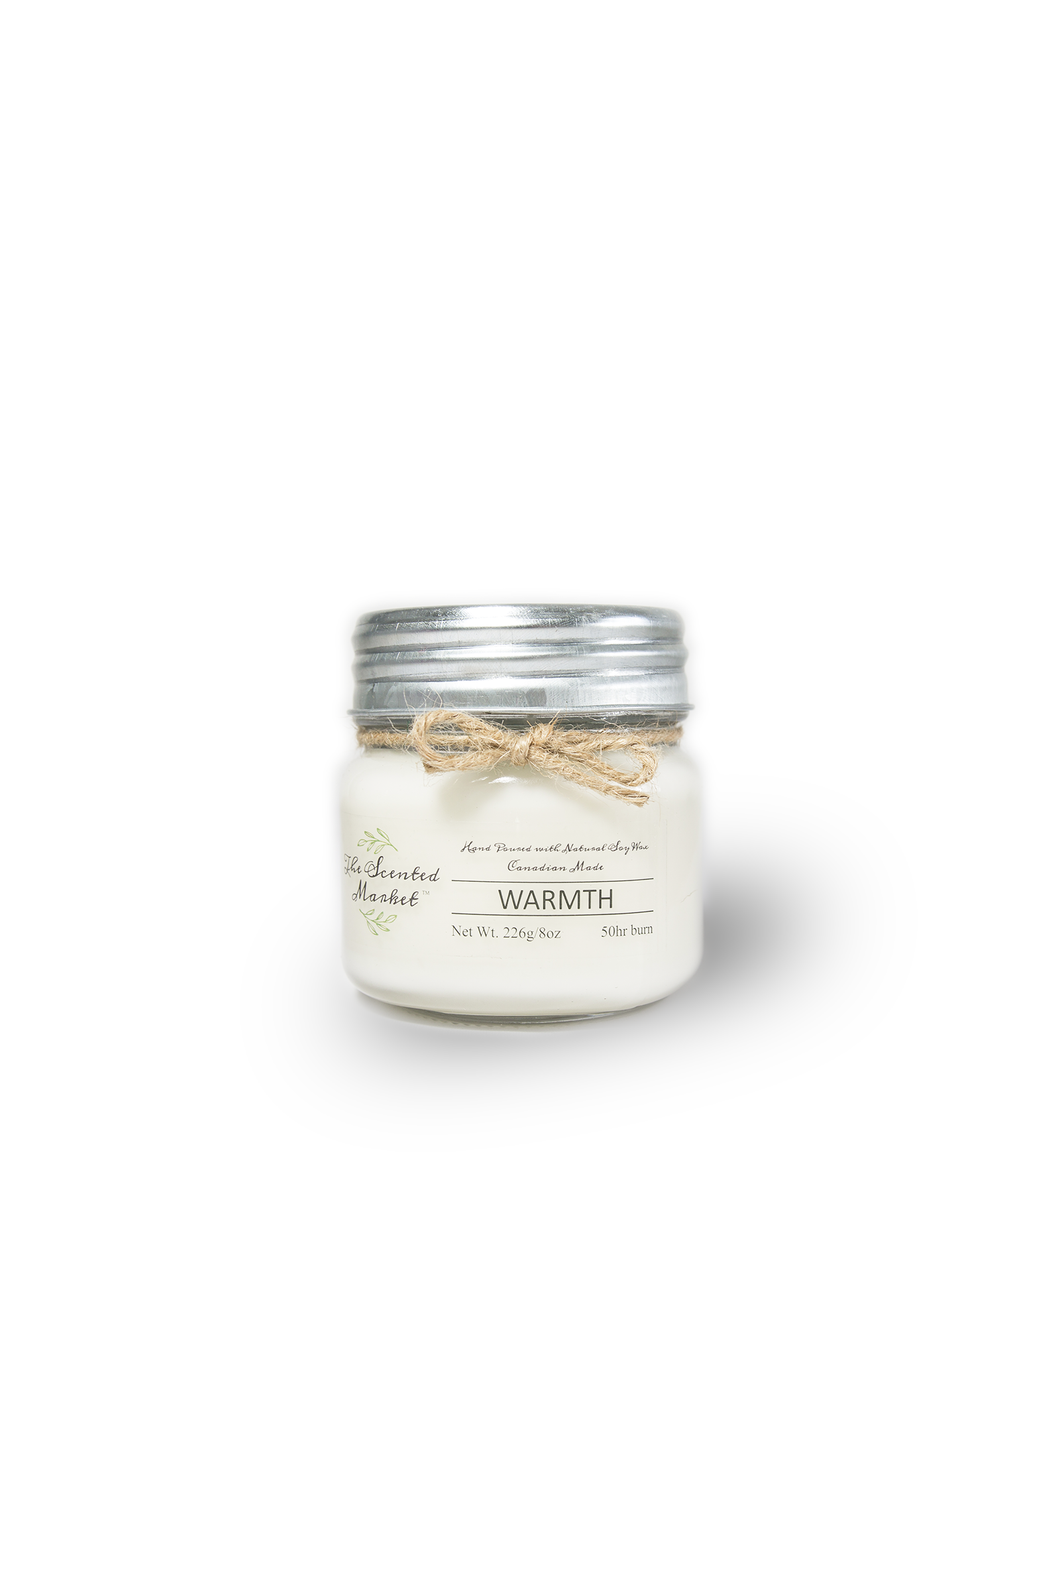 WARMTH SOY WAX CANDLE 8oz